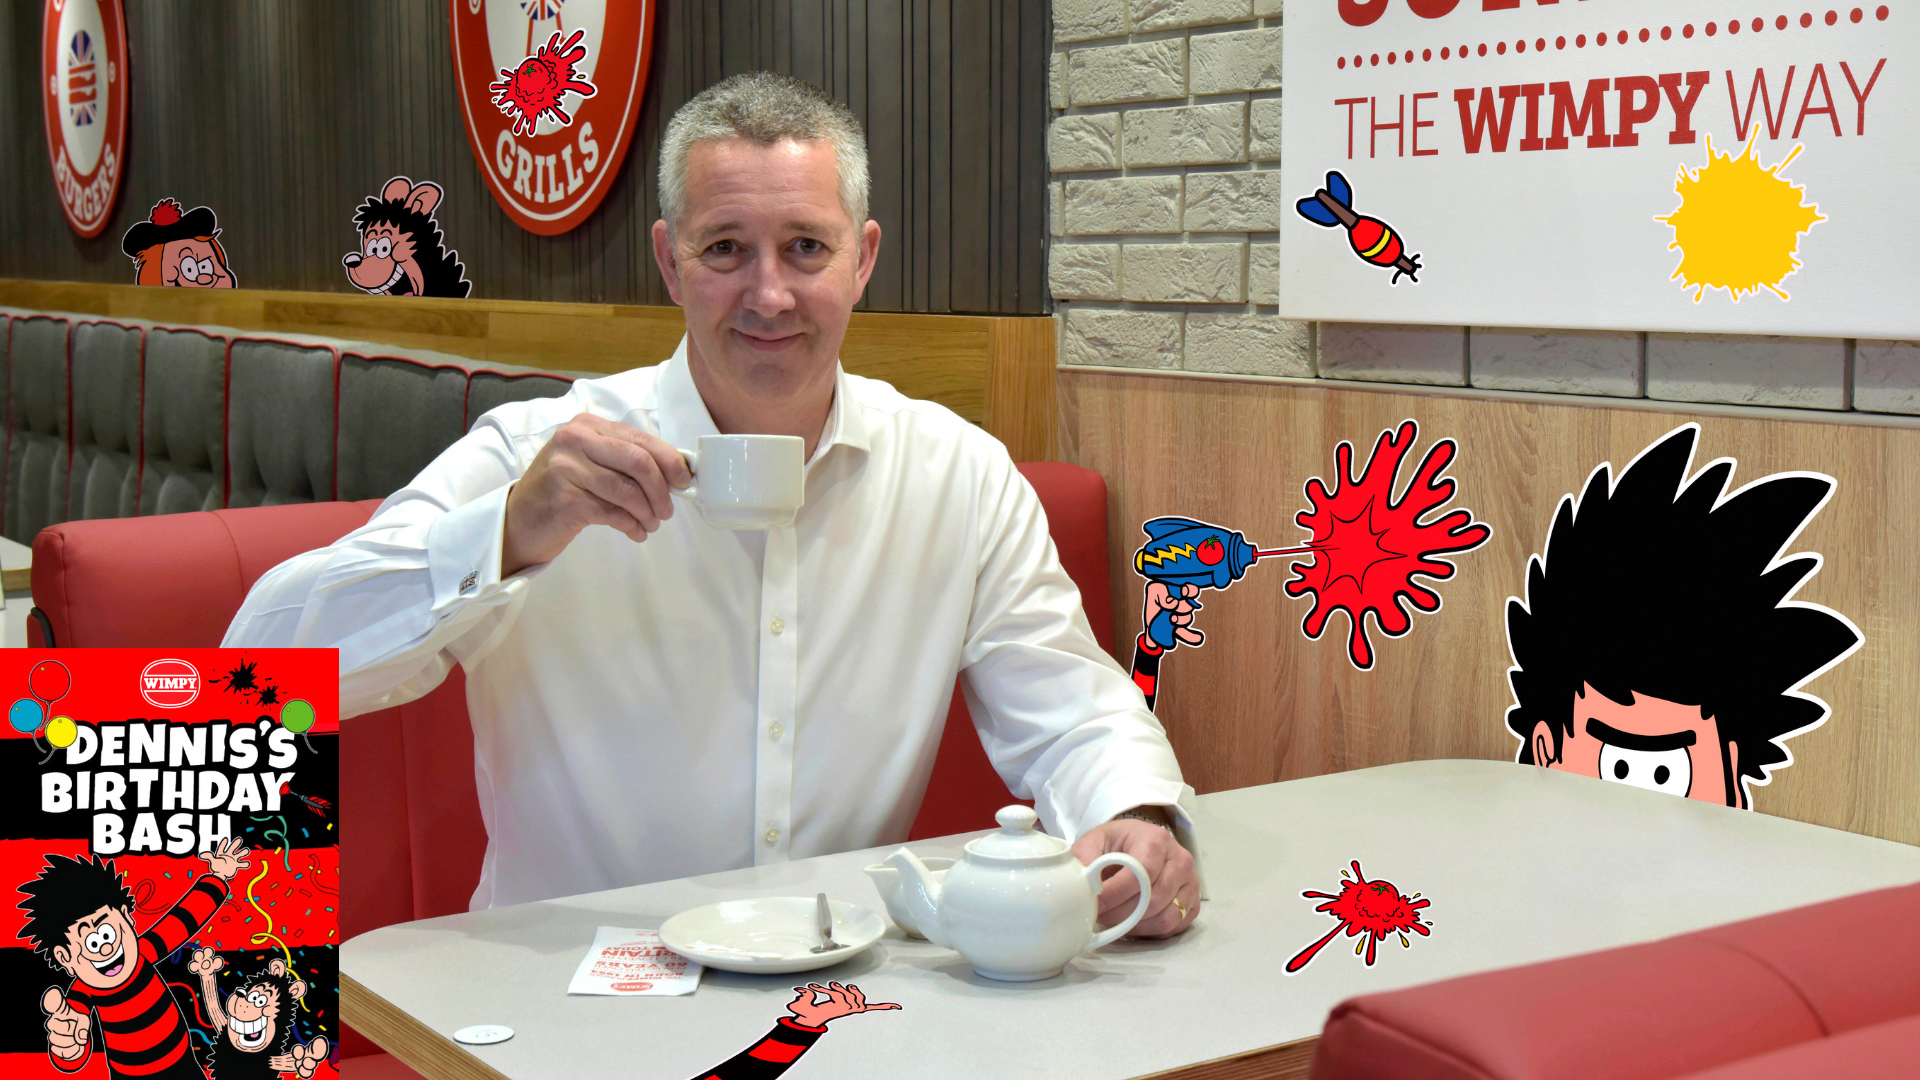 Wimpy UK General Manager Chris Woolfenden helps to get the party started